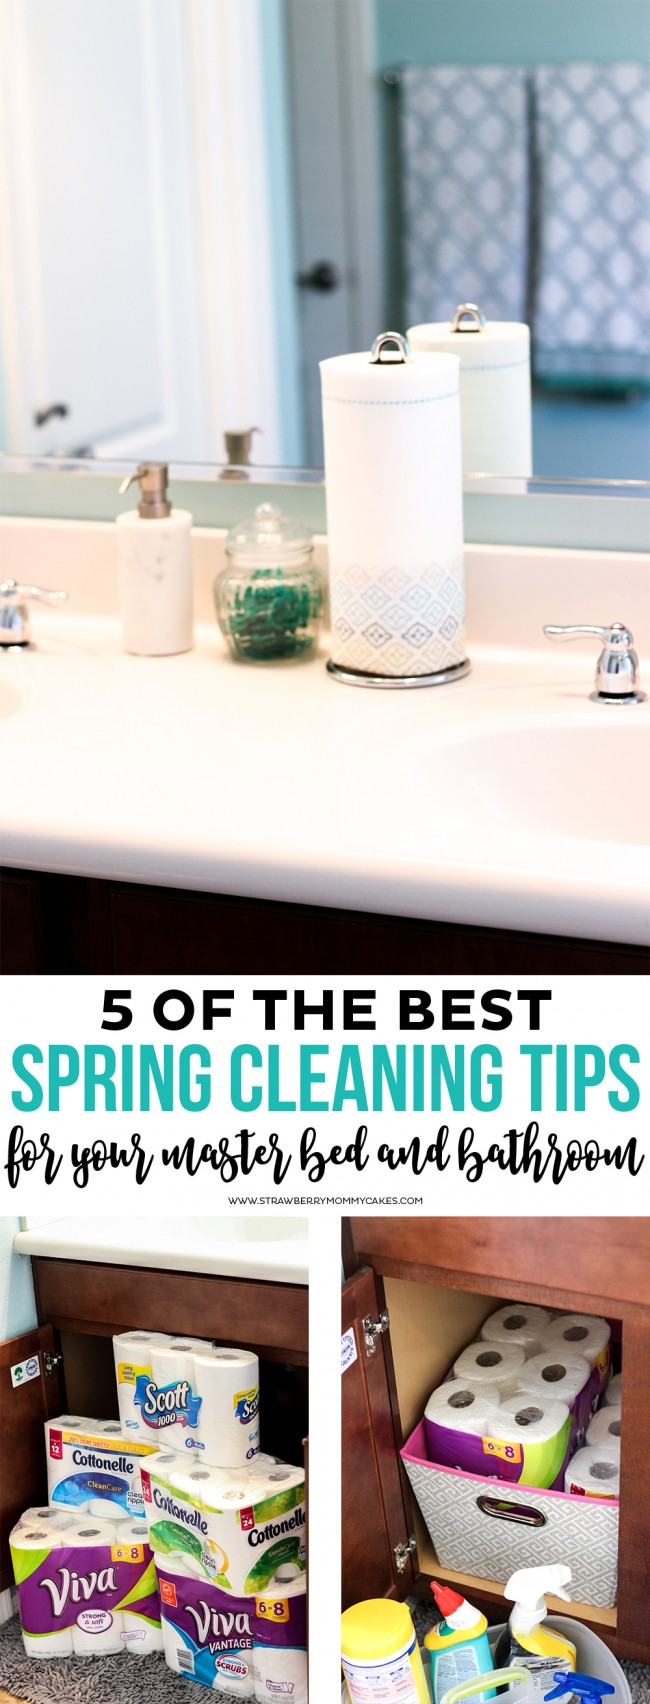 5 of the BEST Spring Cleaning Tips for your Master Bed and Bathroom